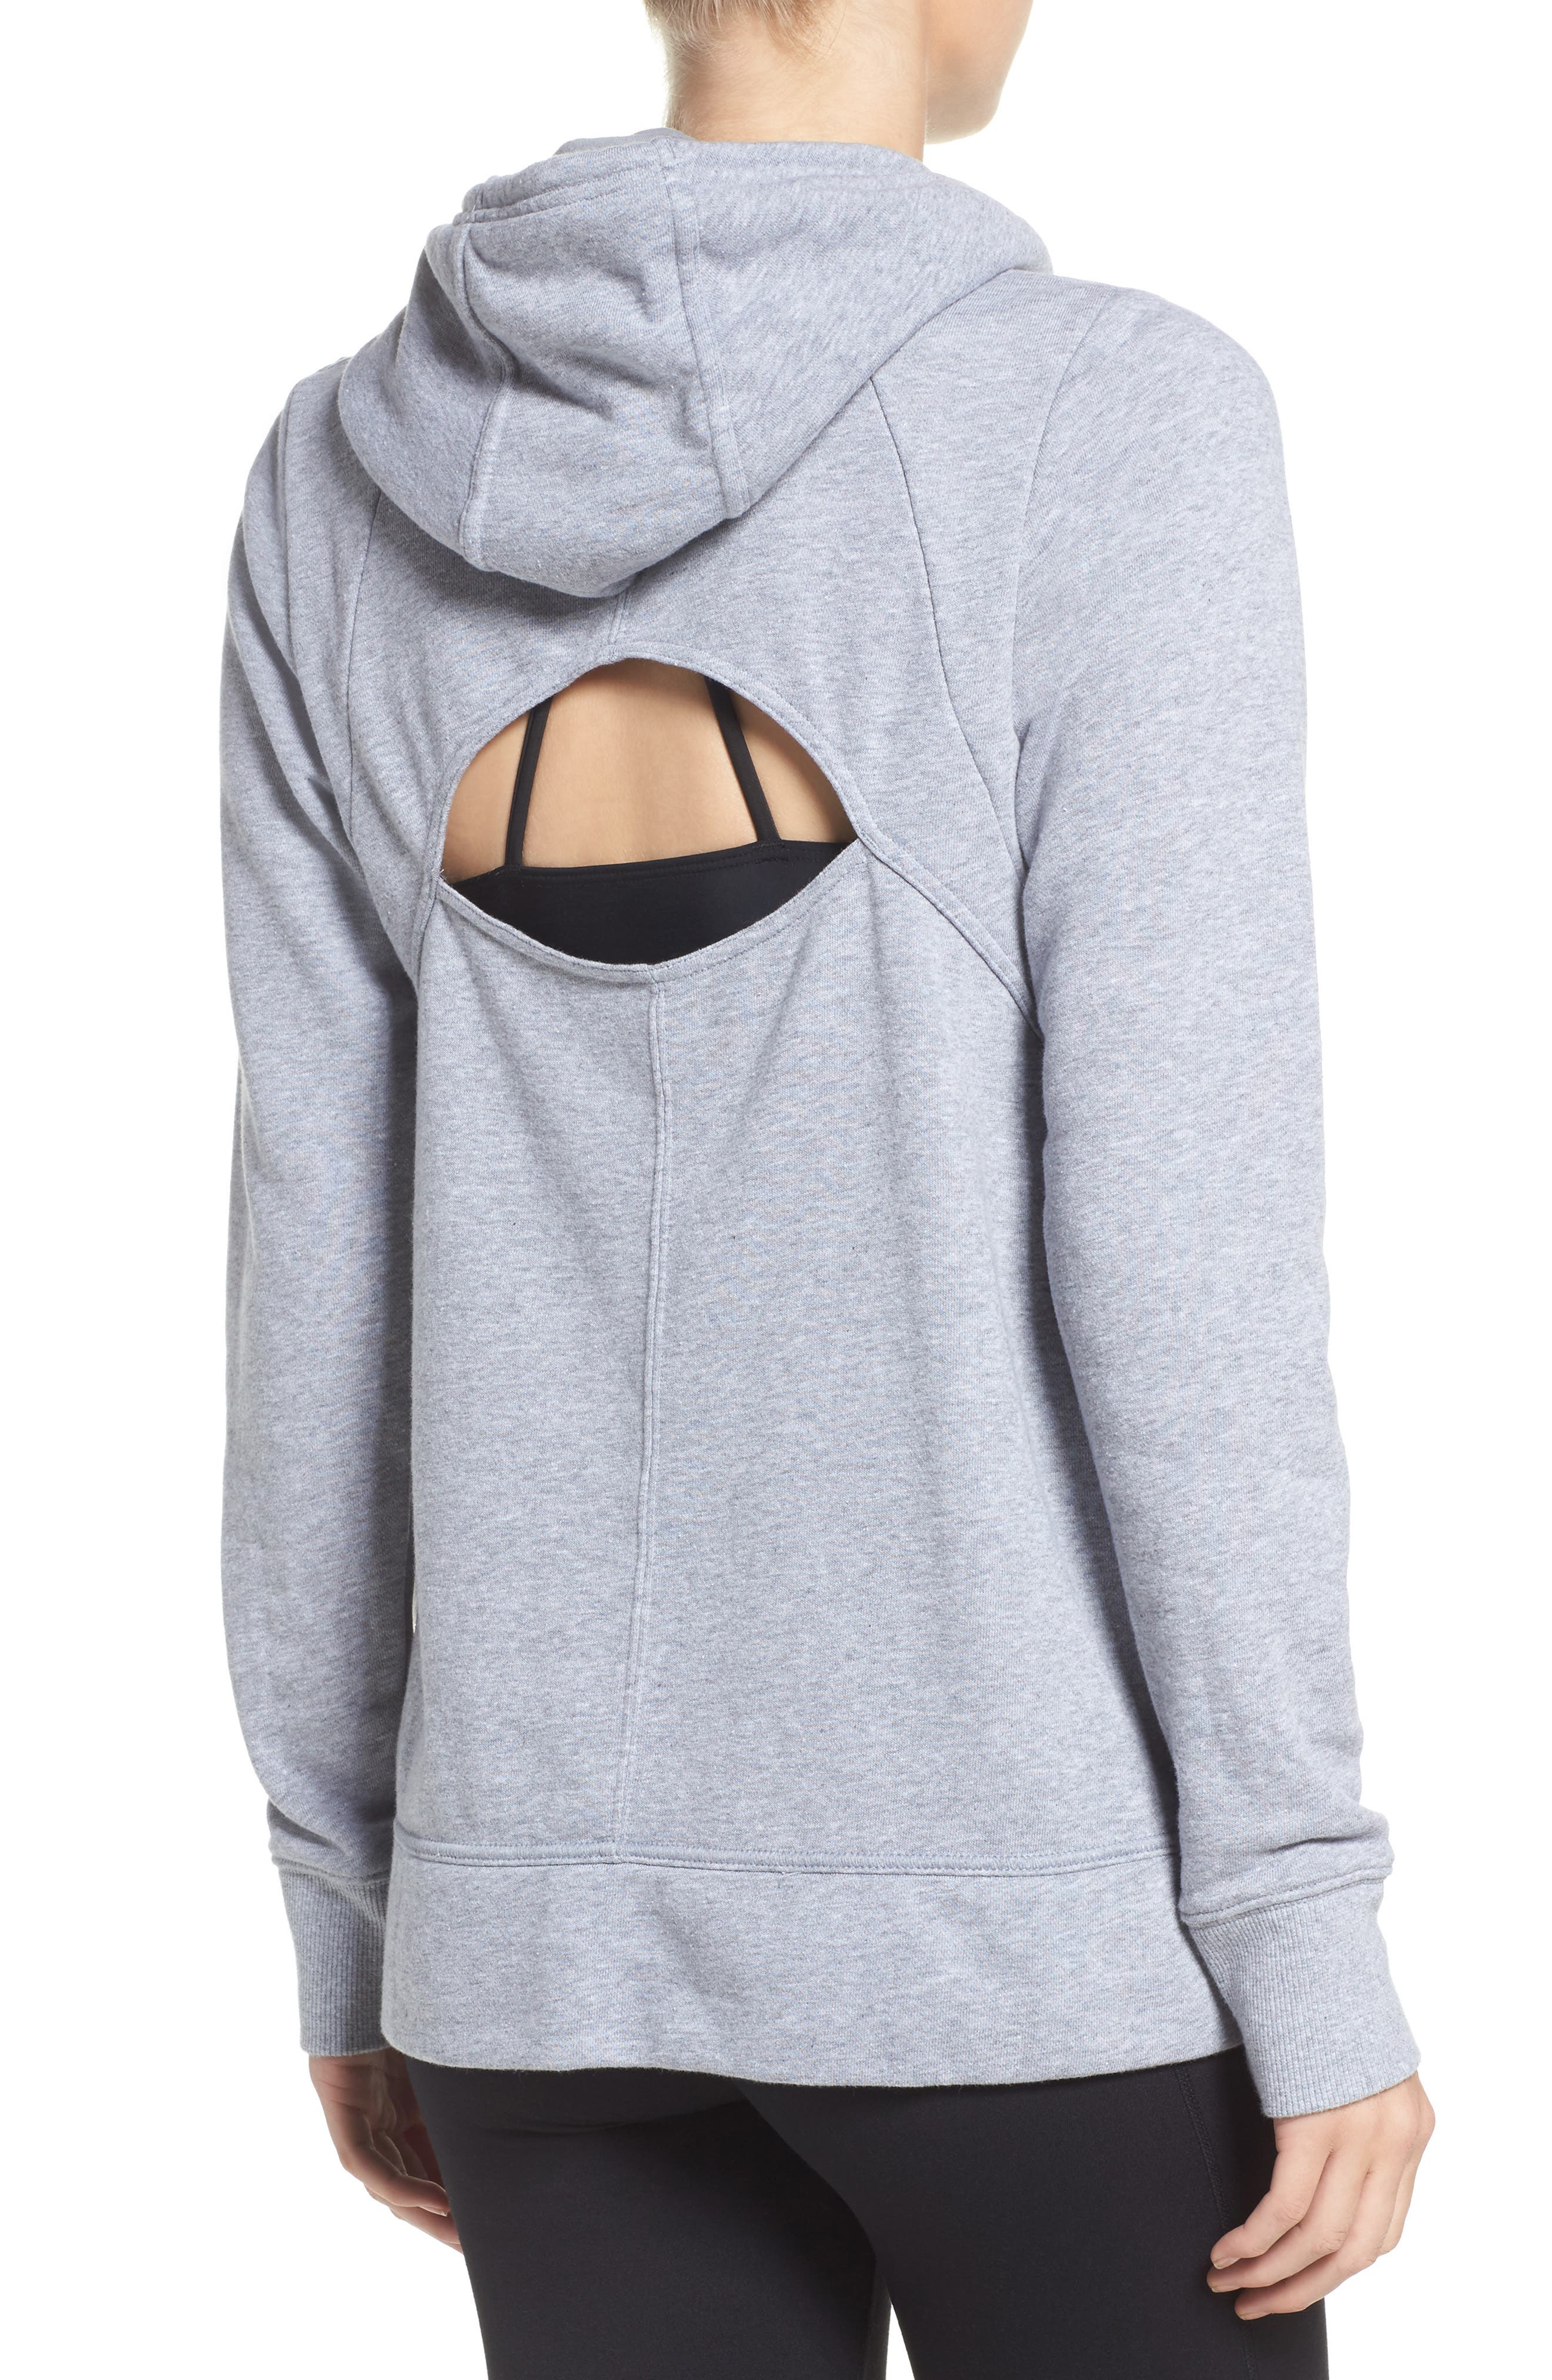 Cutout Back Hoodie,                             Alternate thumbnail 2, color,                             True Gray Heather/ Rhino Grey